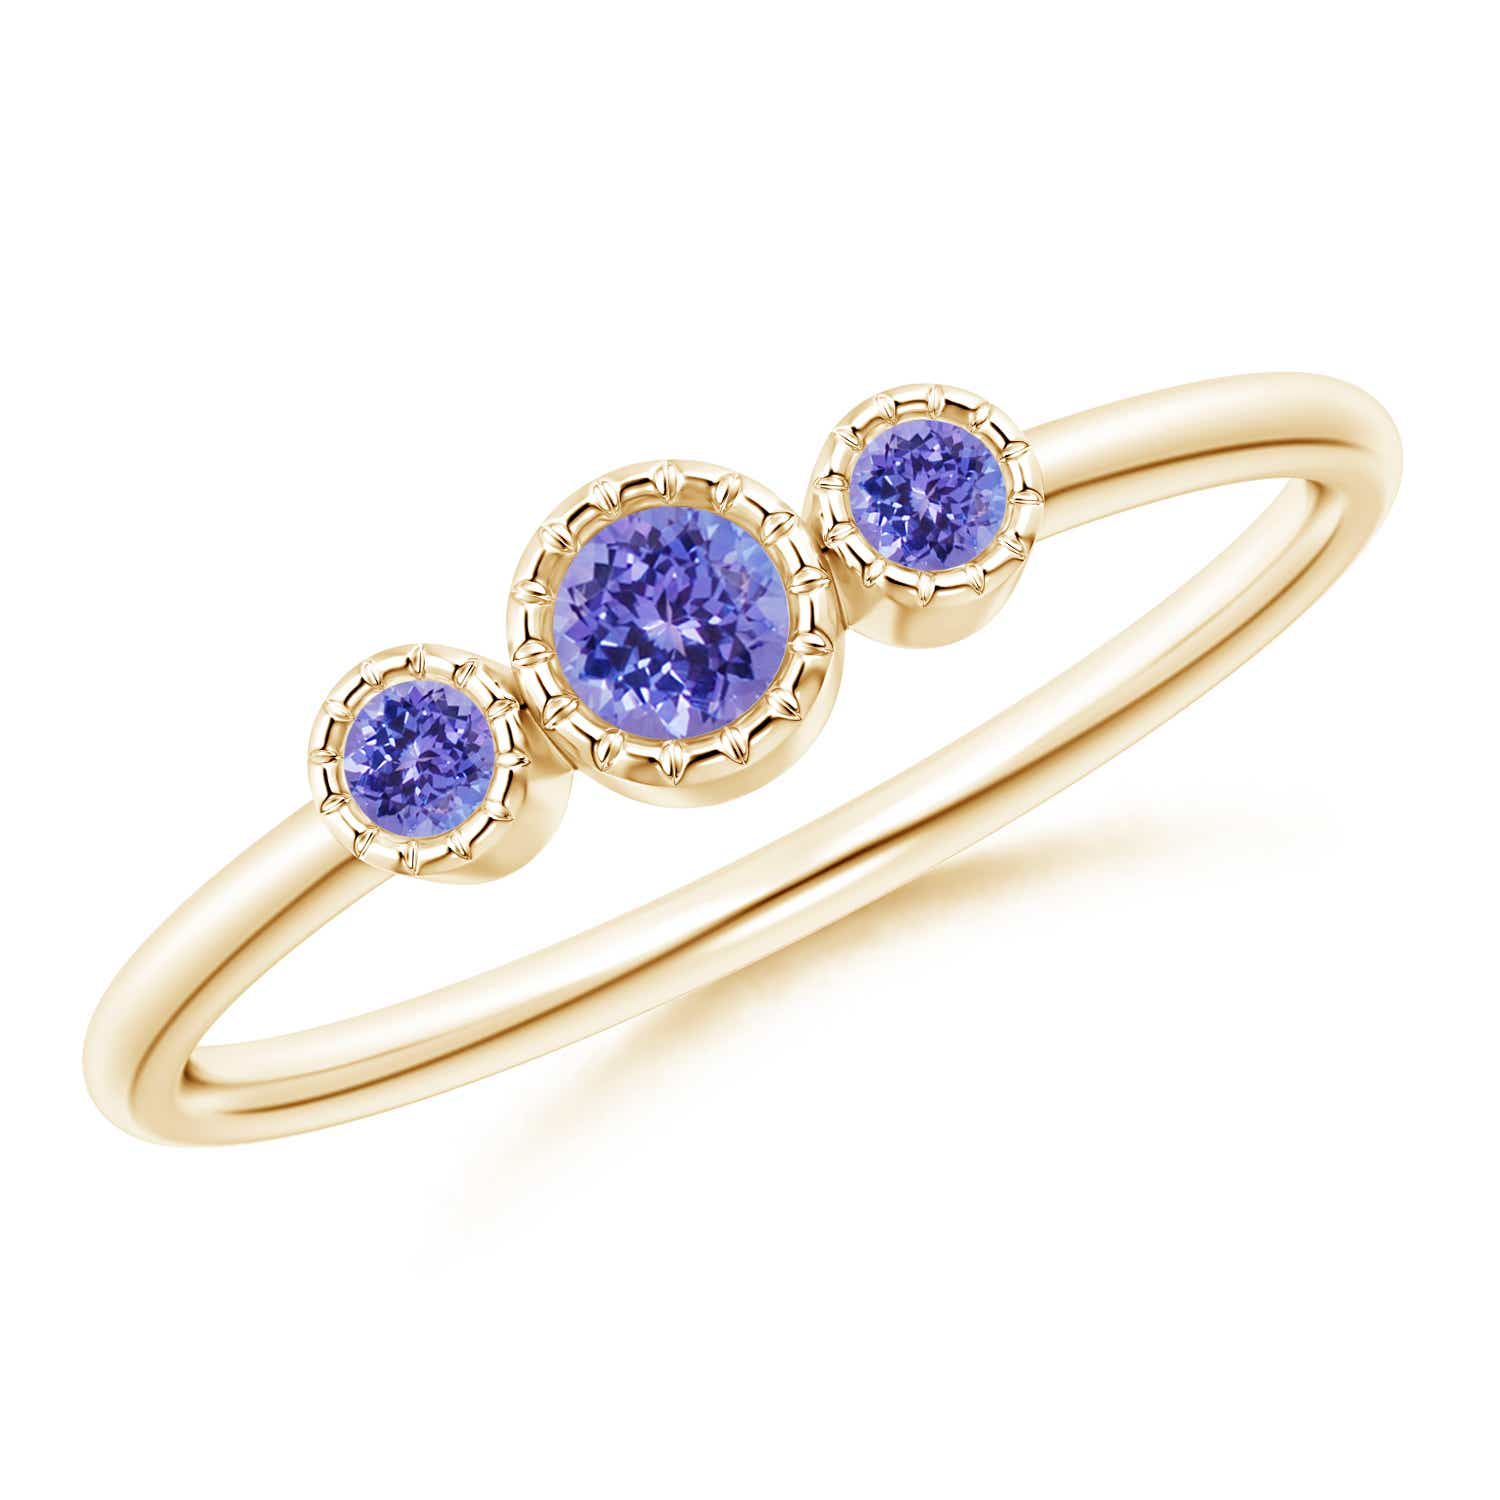 Angara Tanzanite Diamond 3-Stone Engagement Ring in 14k White Gold RNBGf